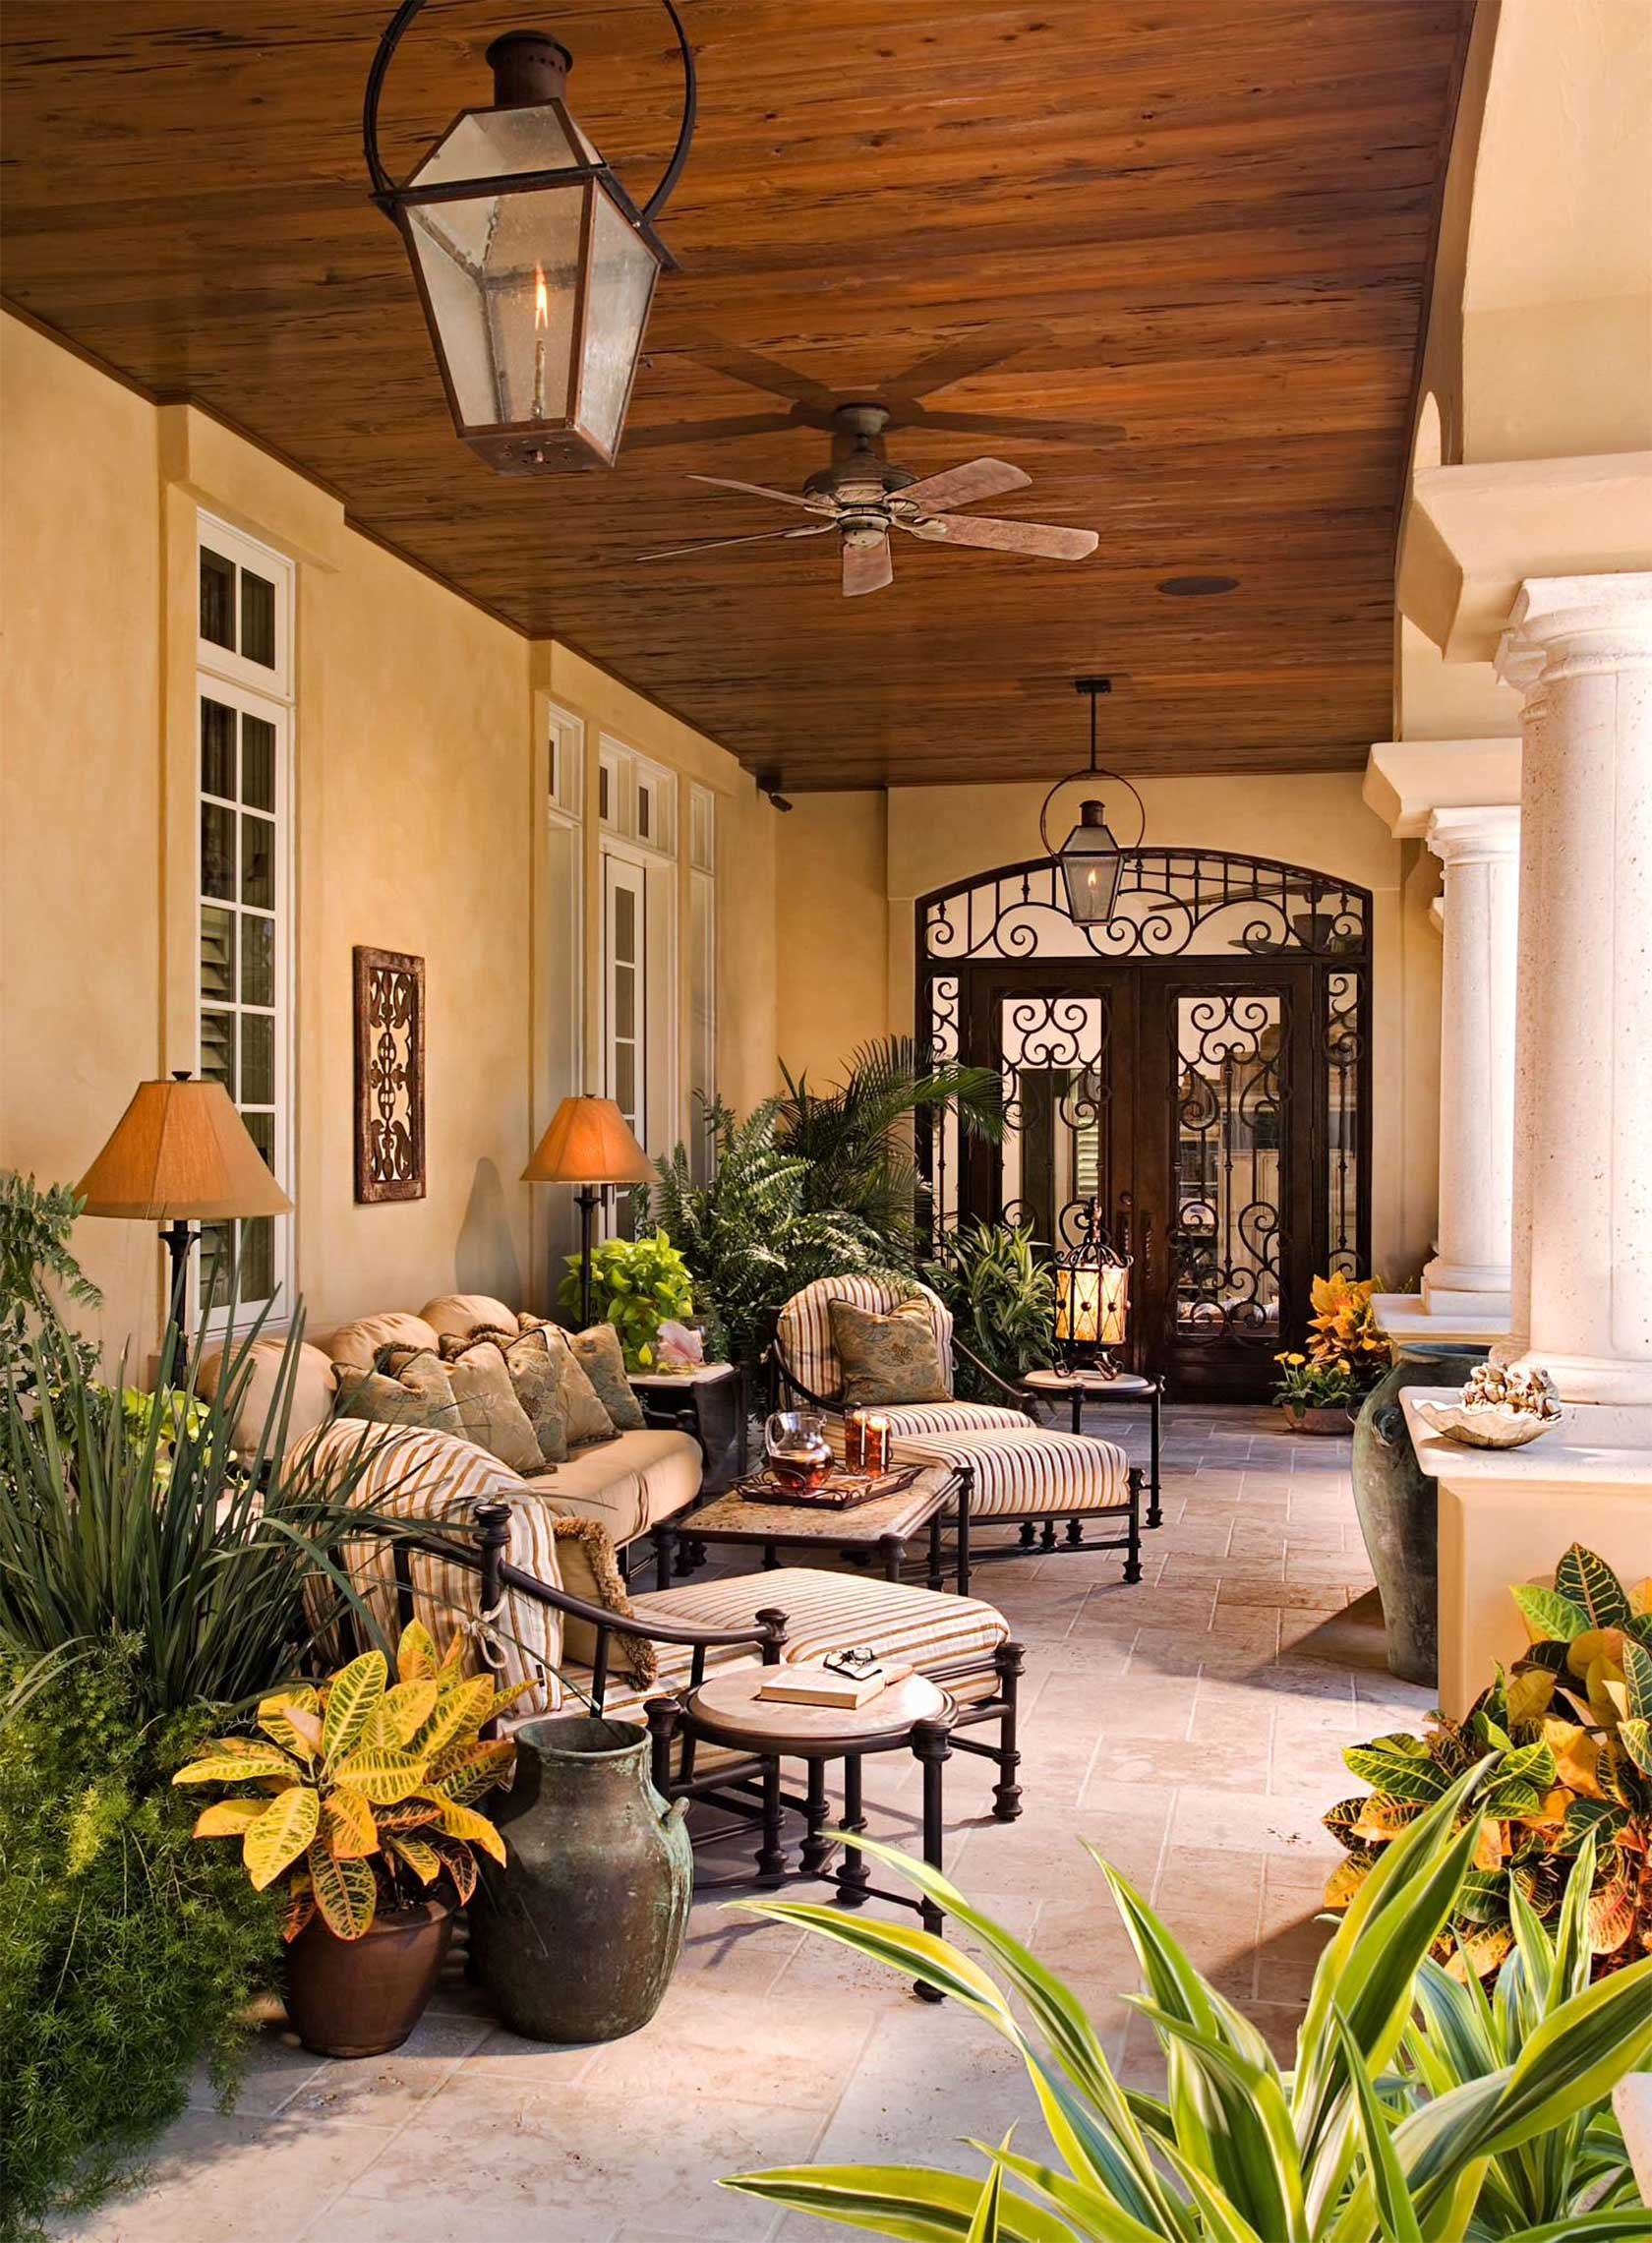 Classically Decorated Space With Plants And Flowers